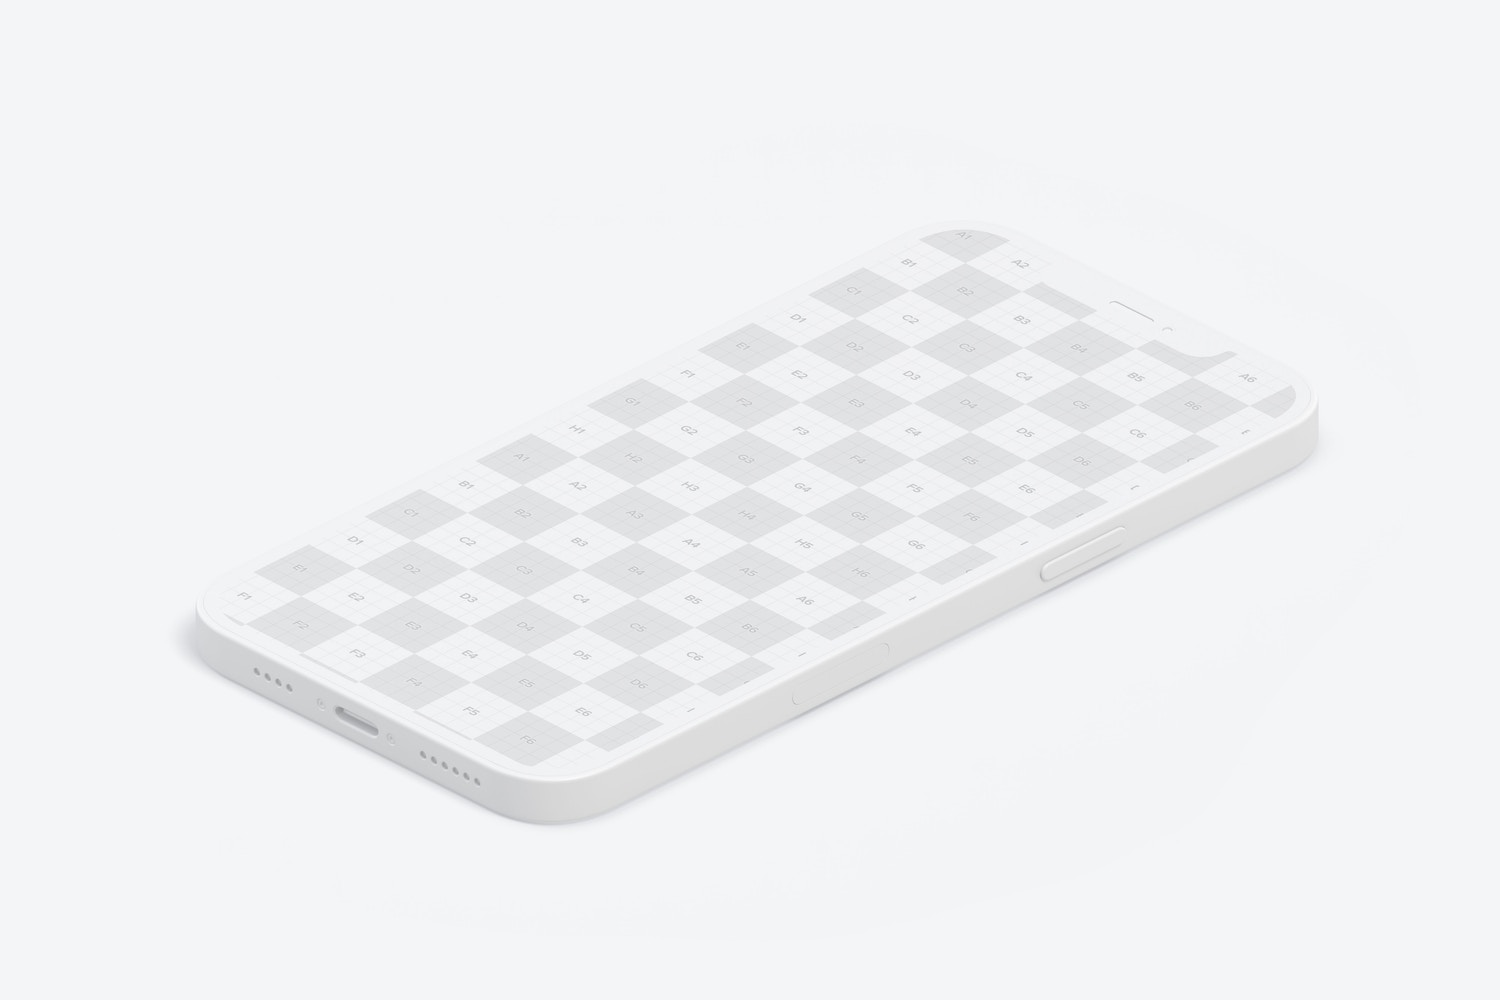 Isometric Clay iPhone 12 Mockup, Right View